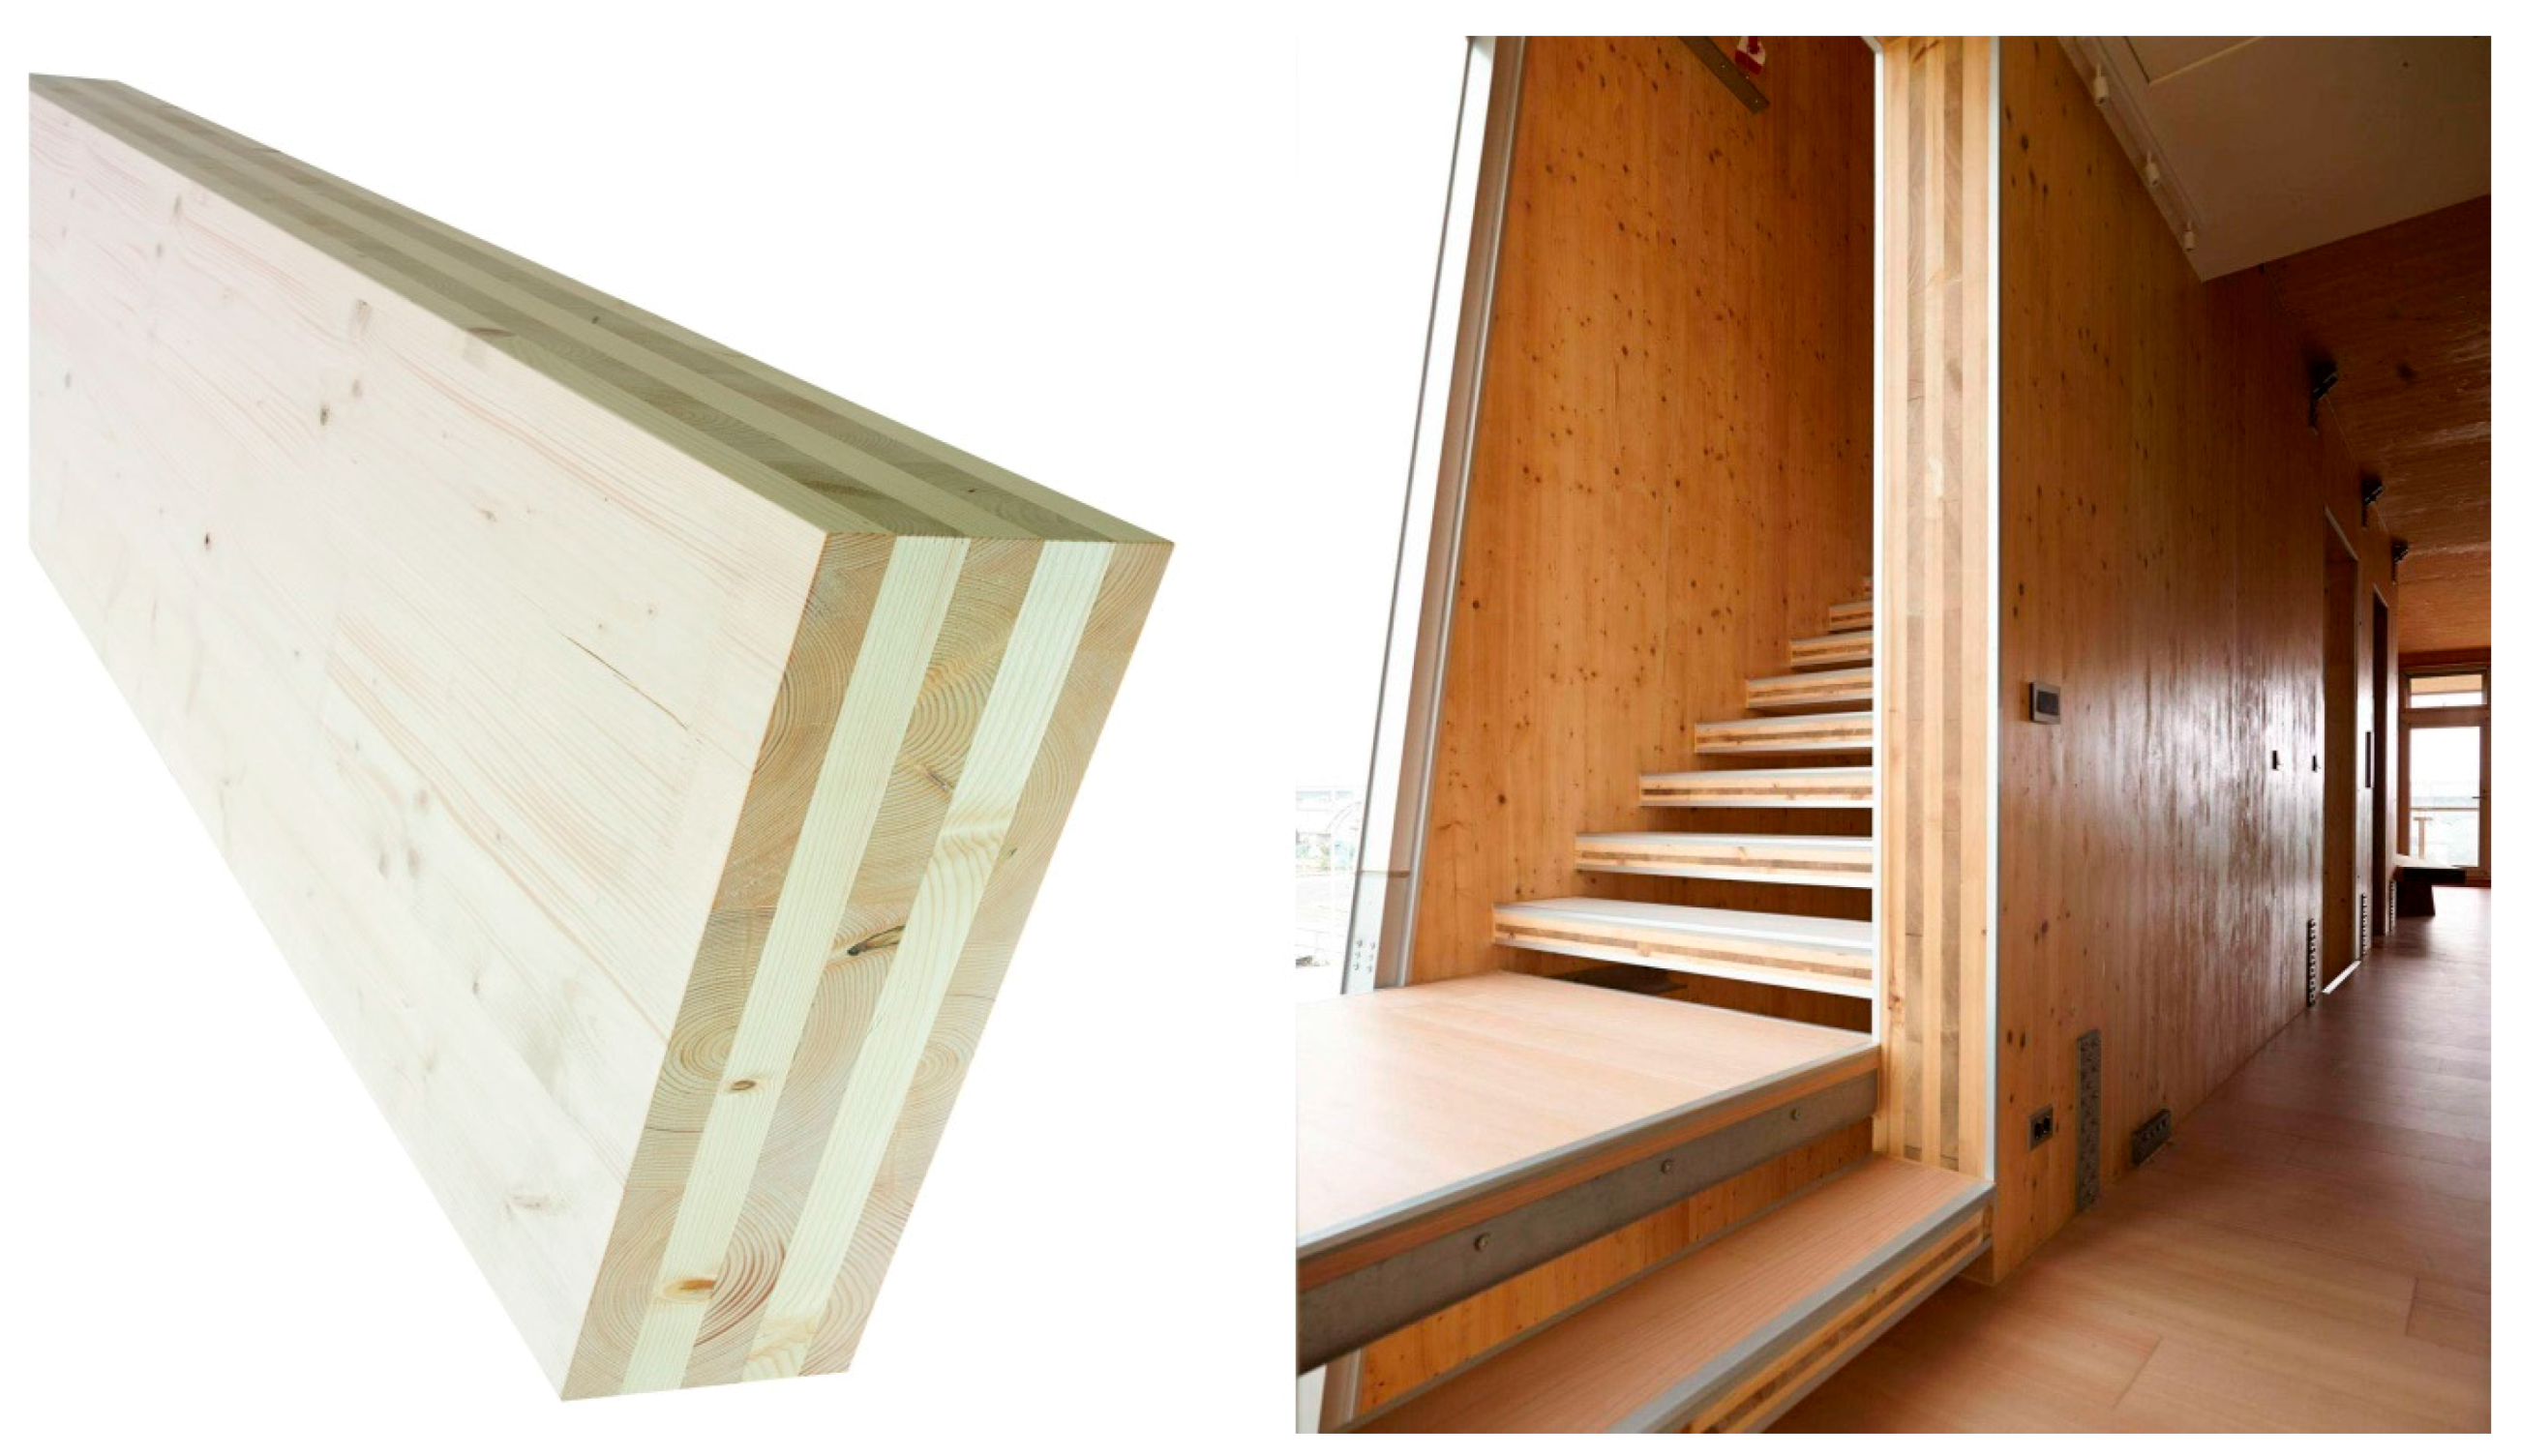 decorative wood railing sytem for indoor stairsfloor.htm sustainability free full text a comparison of the energy  sustainability free full text a